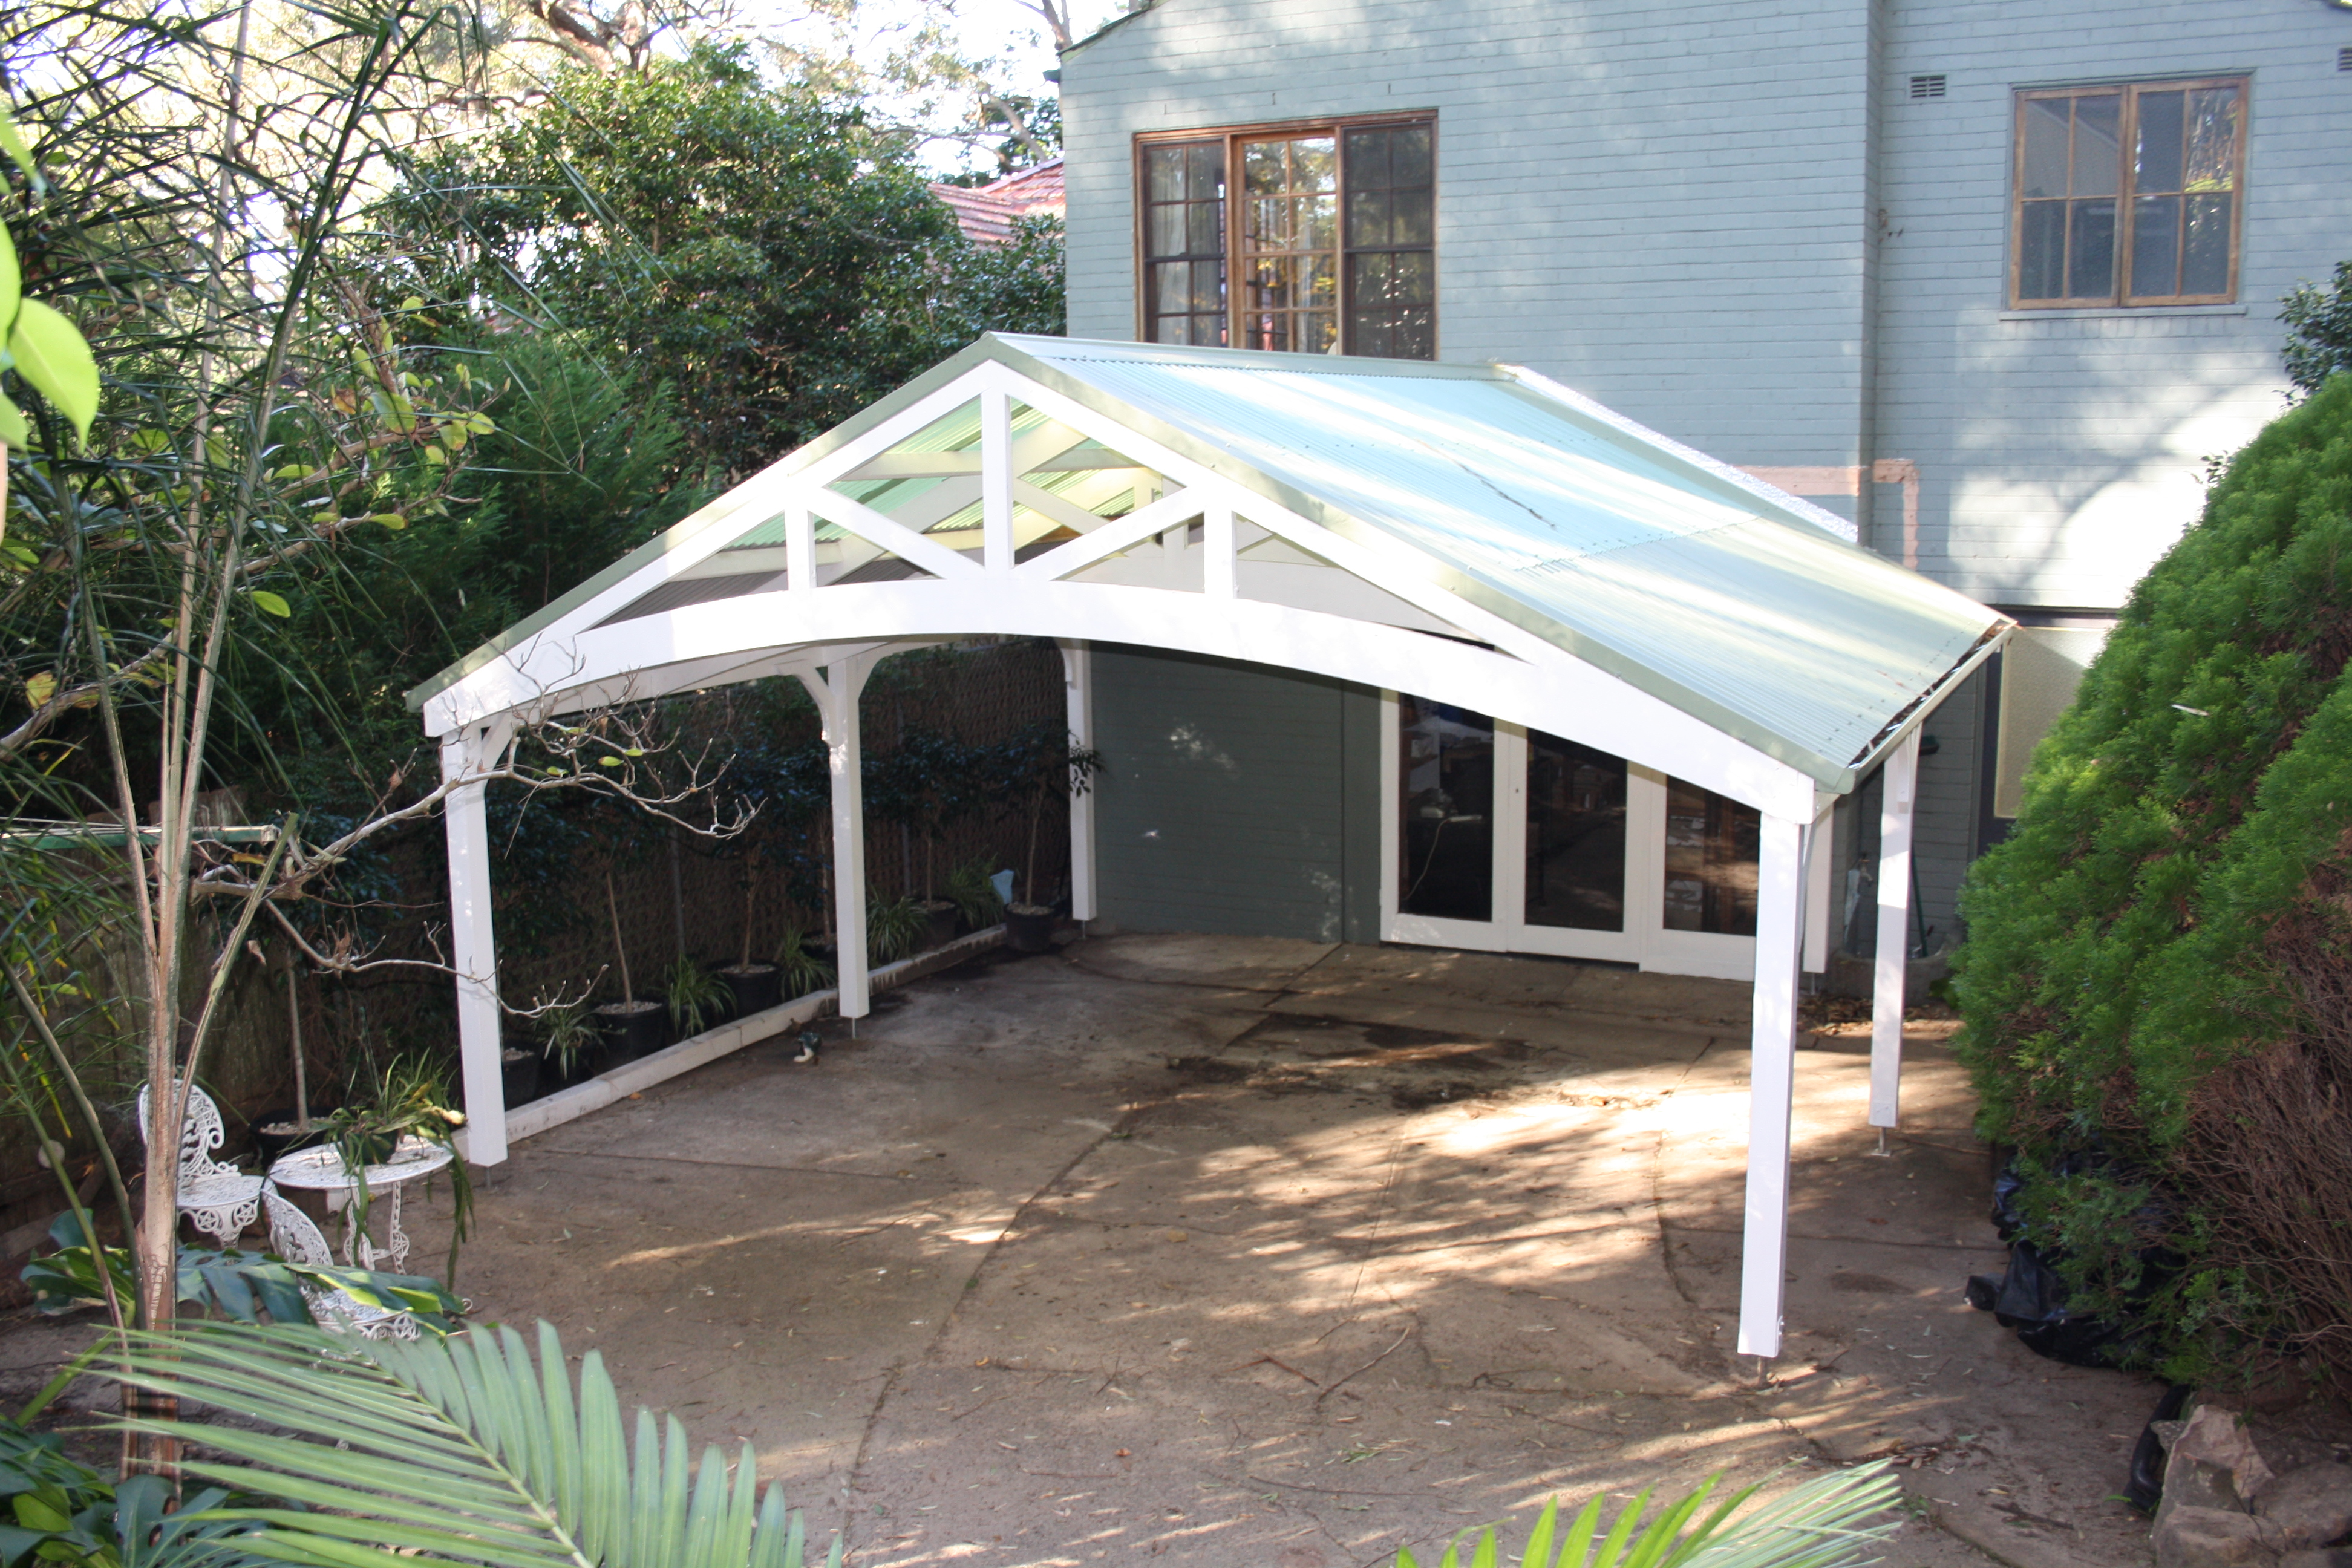 Design Carports Carport Vs Garage Ccd Engineering Ltd